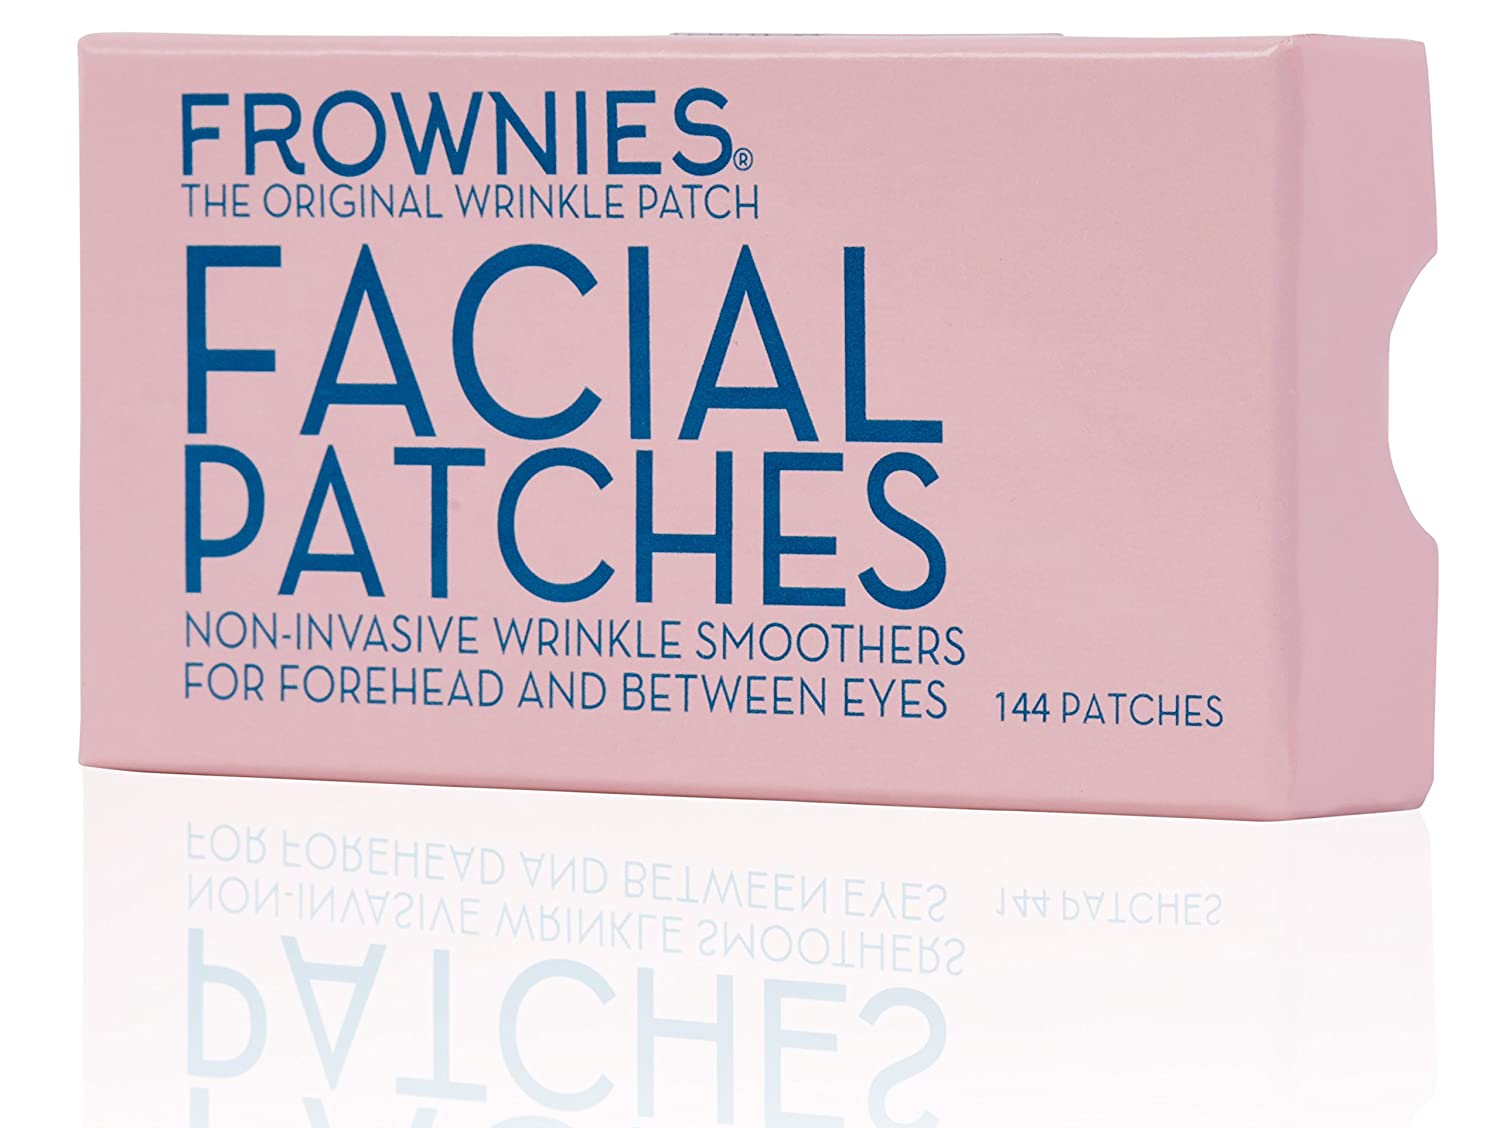 Frownies Forehead and Eyes 144 Facial Anti Wrinkle Patches  Original  Wrinkle Smoothers Since 1889